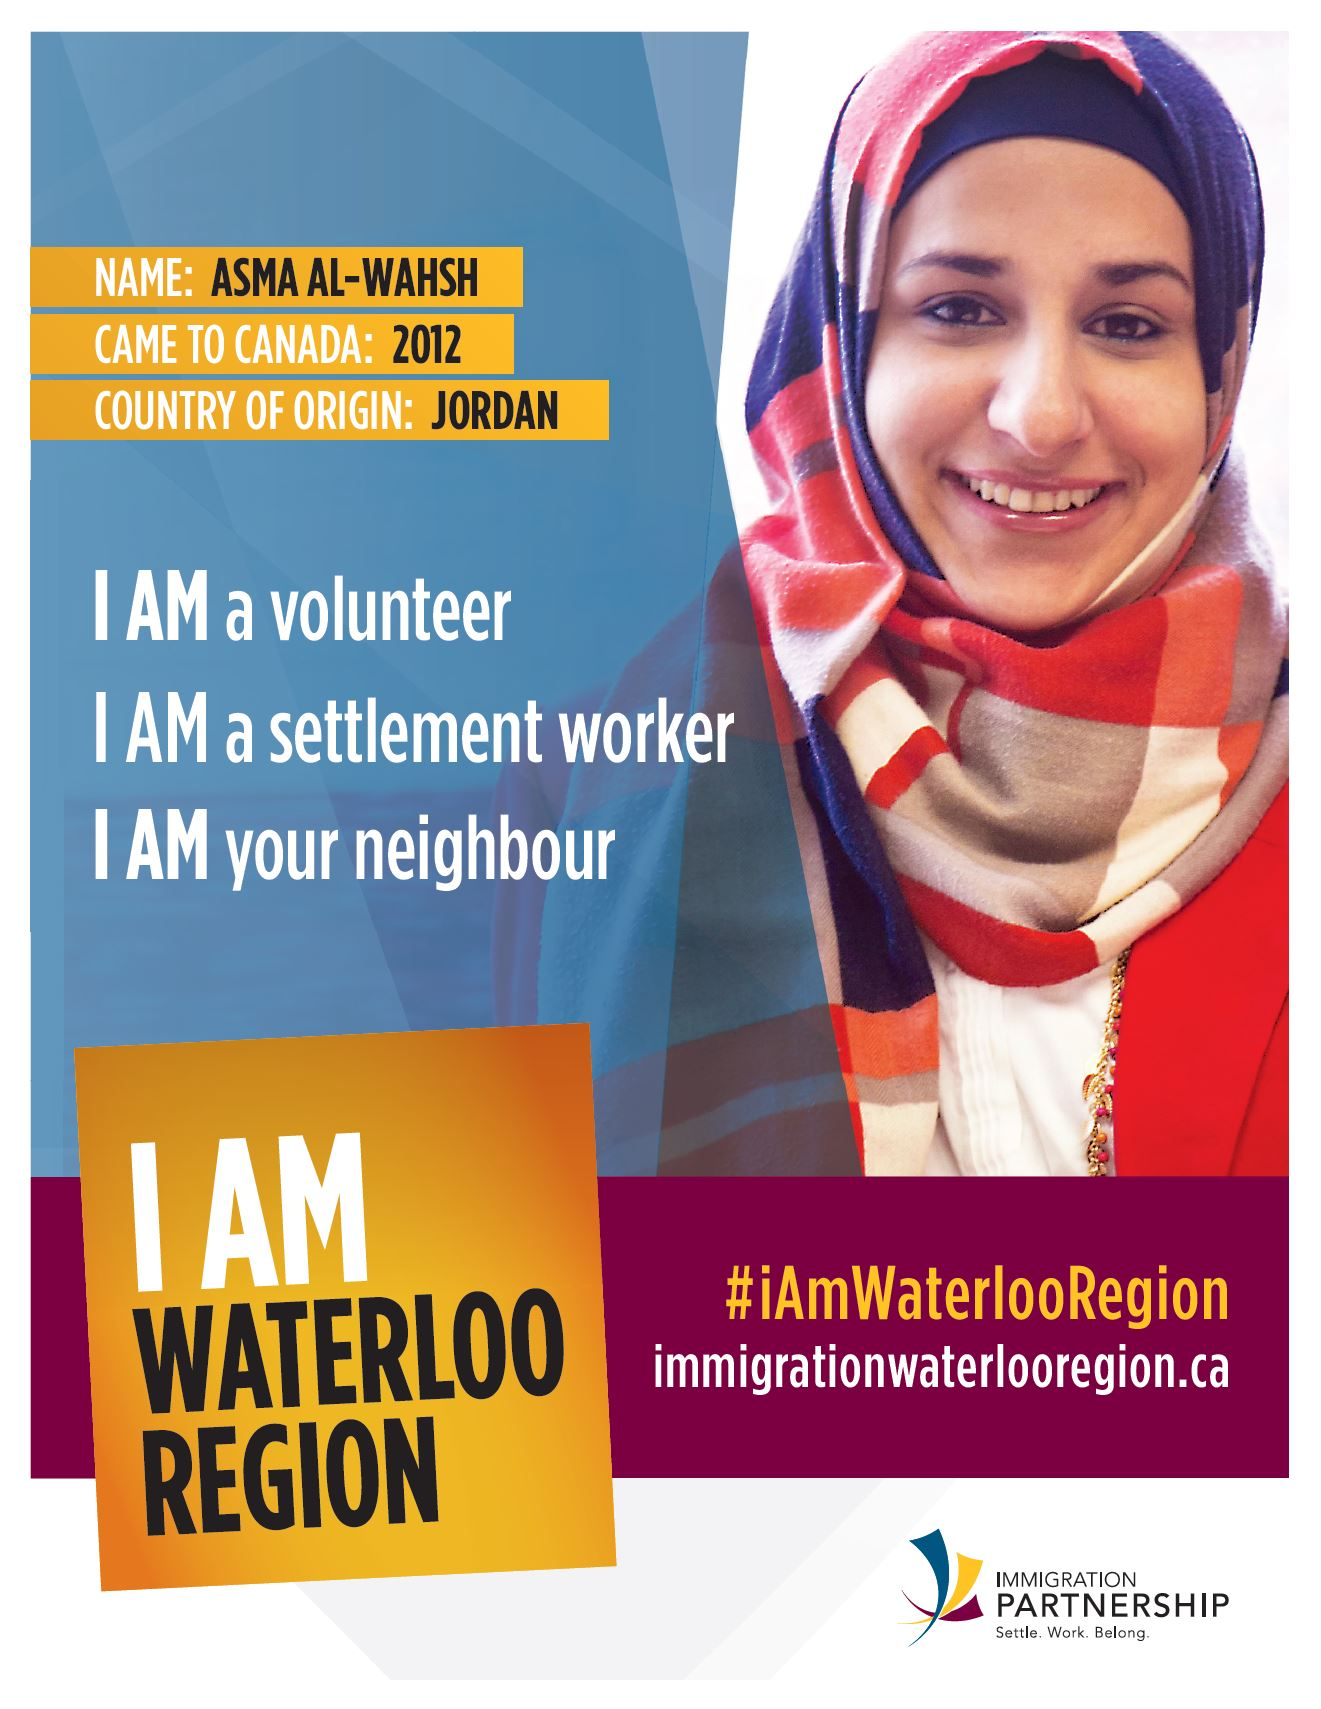 I Am Waterloo Region - Asma Alwahsh - Immigration Waterloo Region